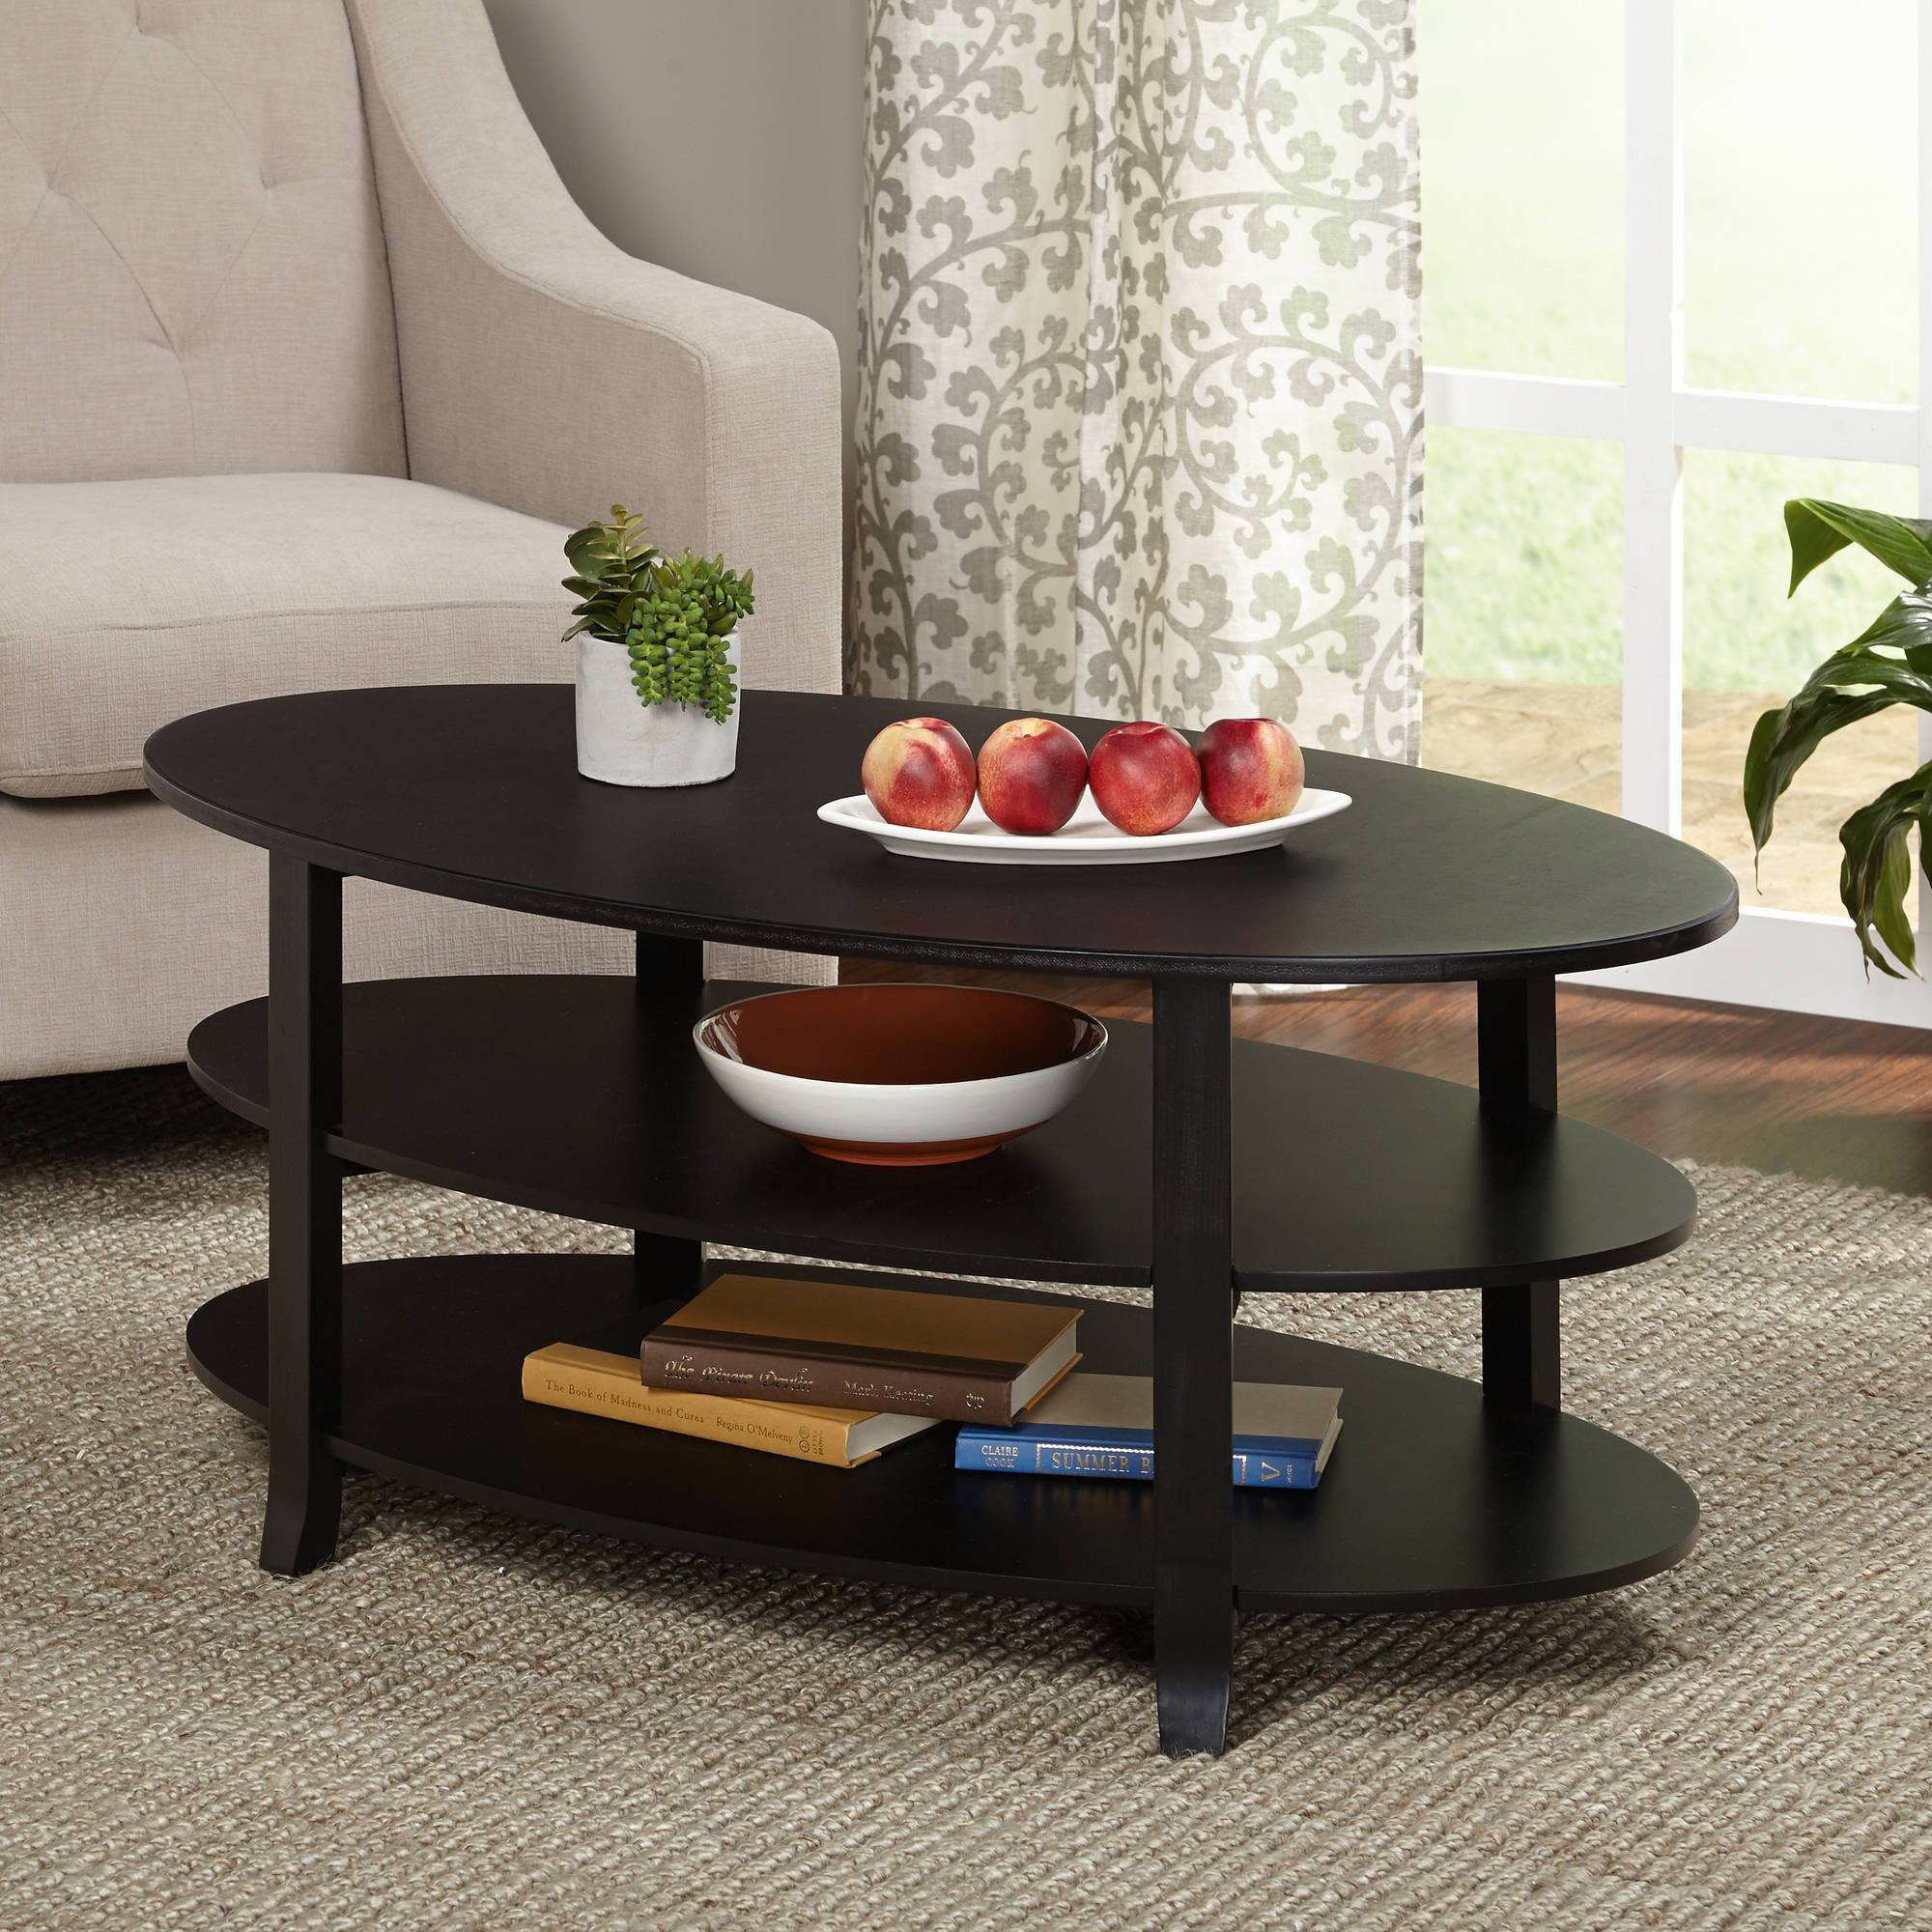 Ameriwood Home Carson Coffee Table, Espresso/silver – Walmart Pertaining To Small Coffee Tables With Storage (View 2 of 30)